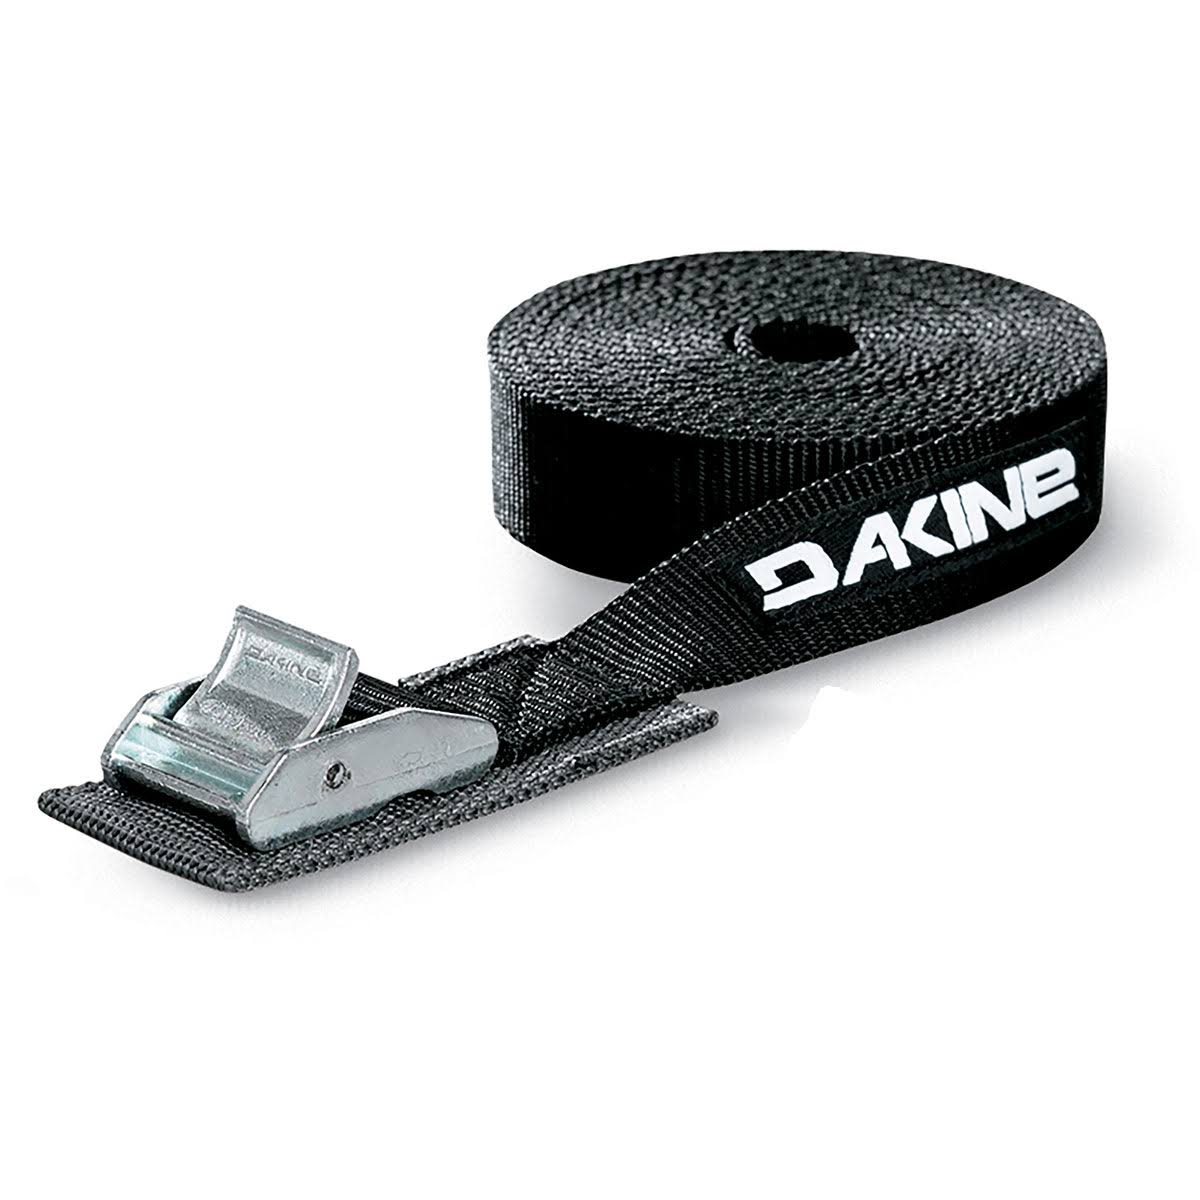 Dakine Tie Down Strap - 20ft, Black